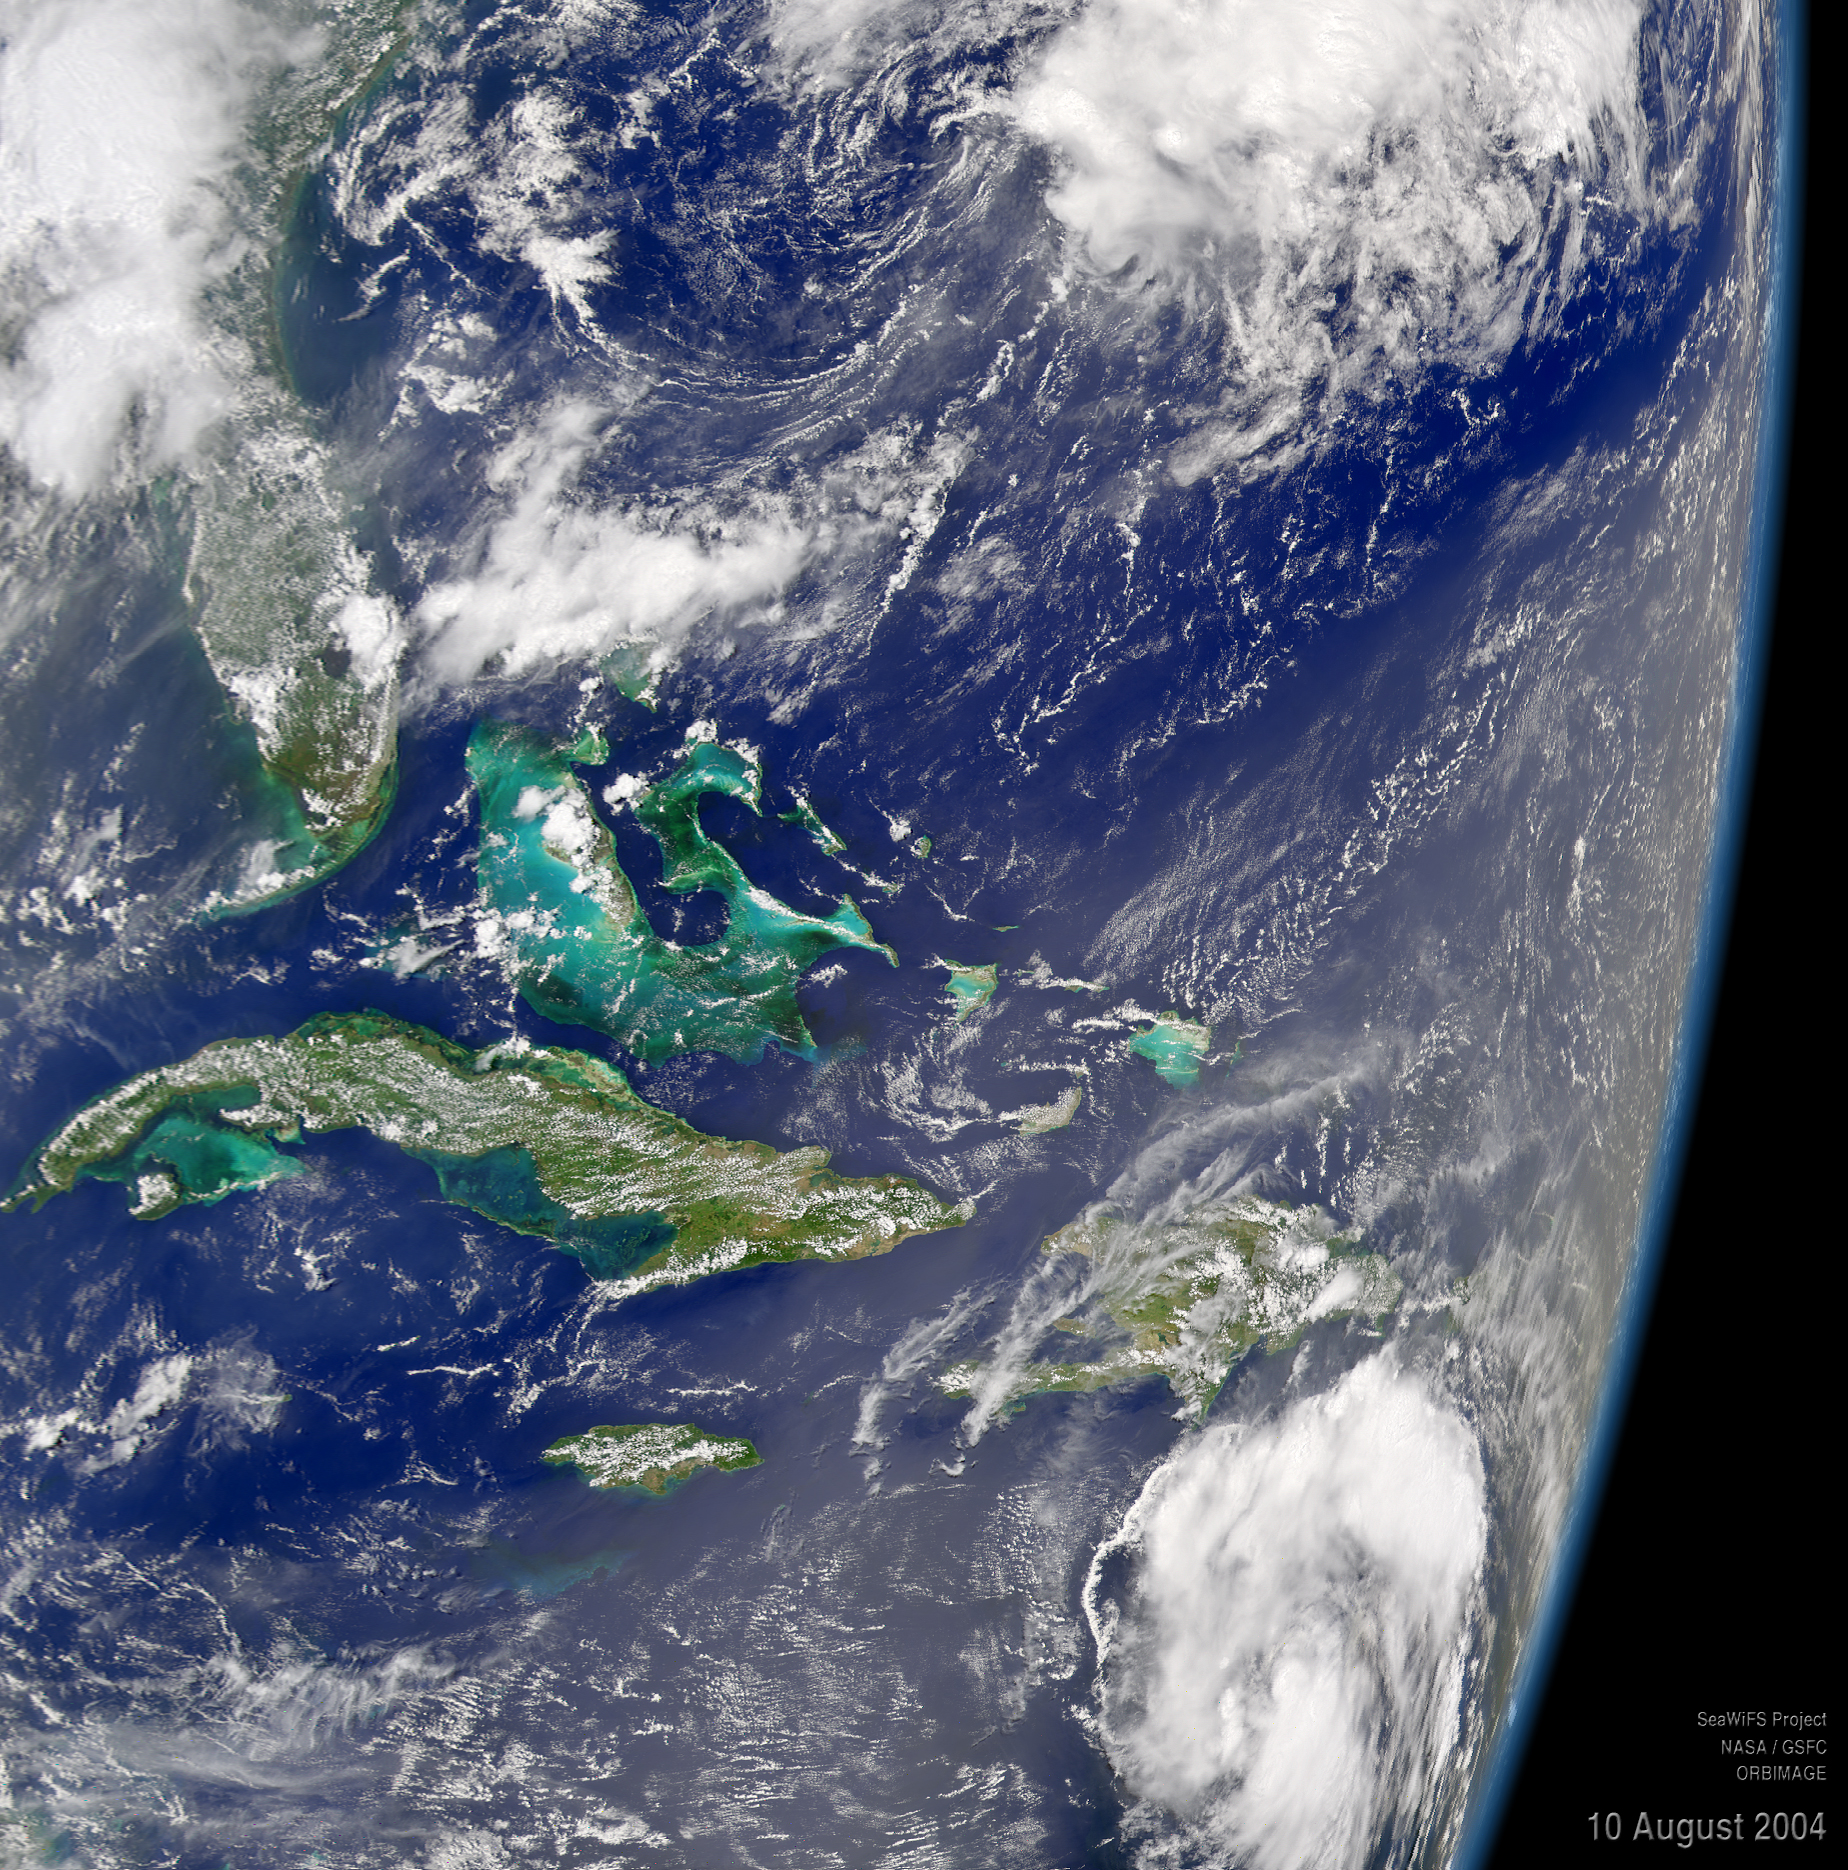 hurricane charley essay As with hurricanes katrina, charley, frances, ivan, and jeanne it is apparent the mark that this act of nature can cause with areas or environments in its path.